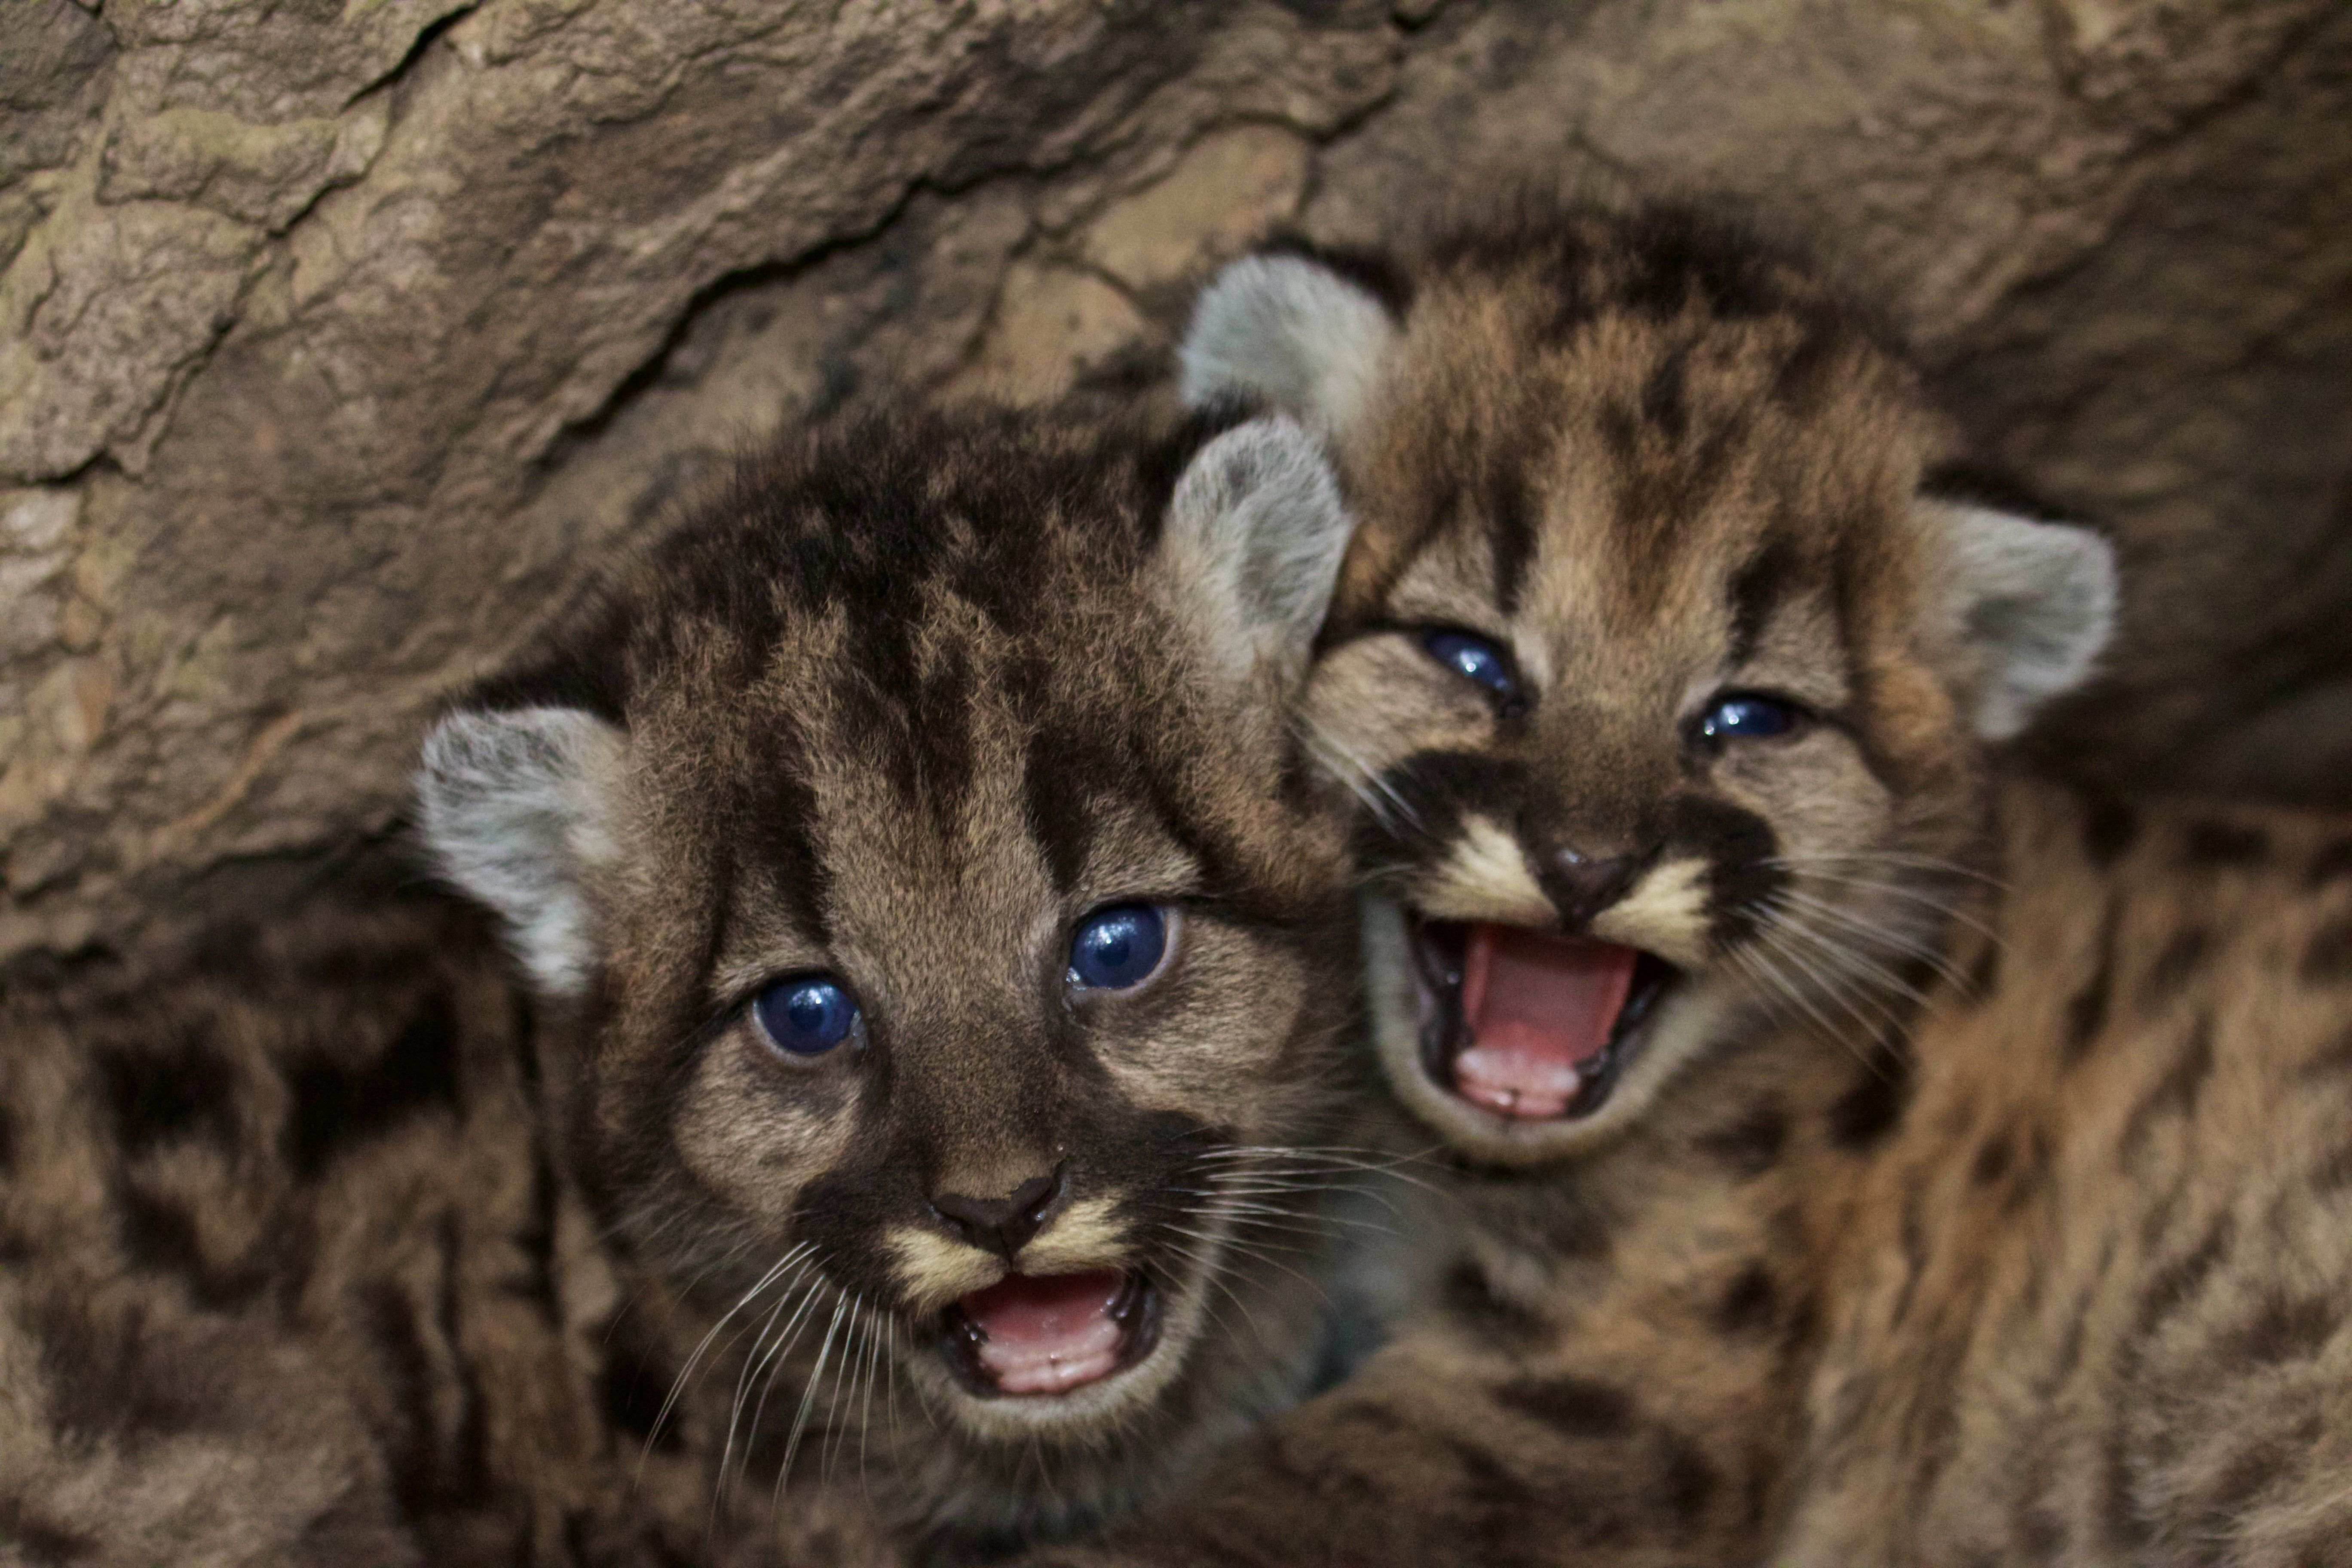 Two male and female mountain lion kittens, named P-46 and P-47, starin video shot in the Santa Monica Mountains.